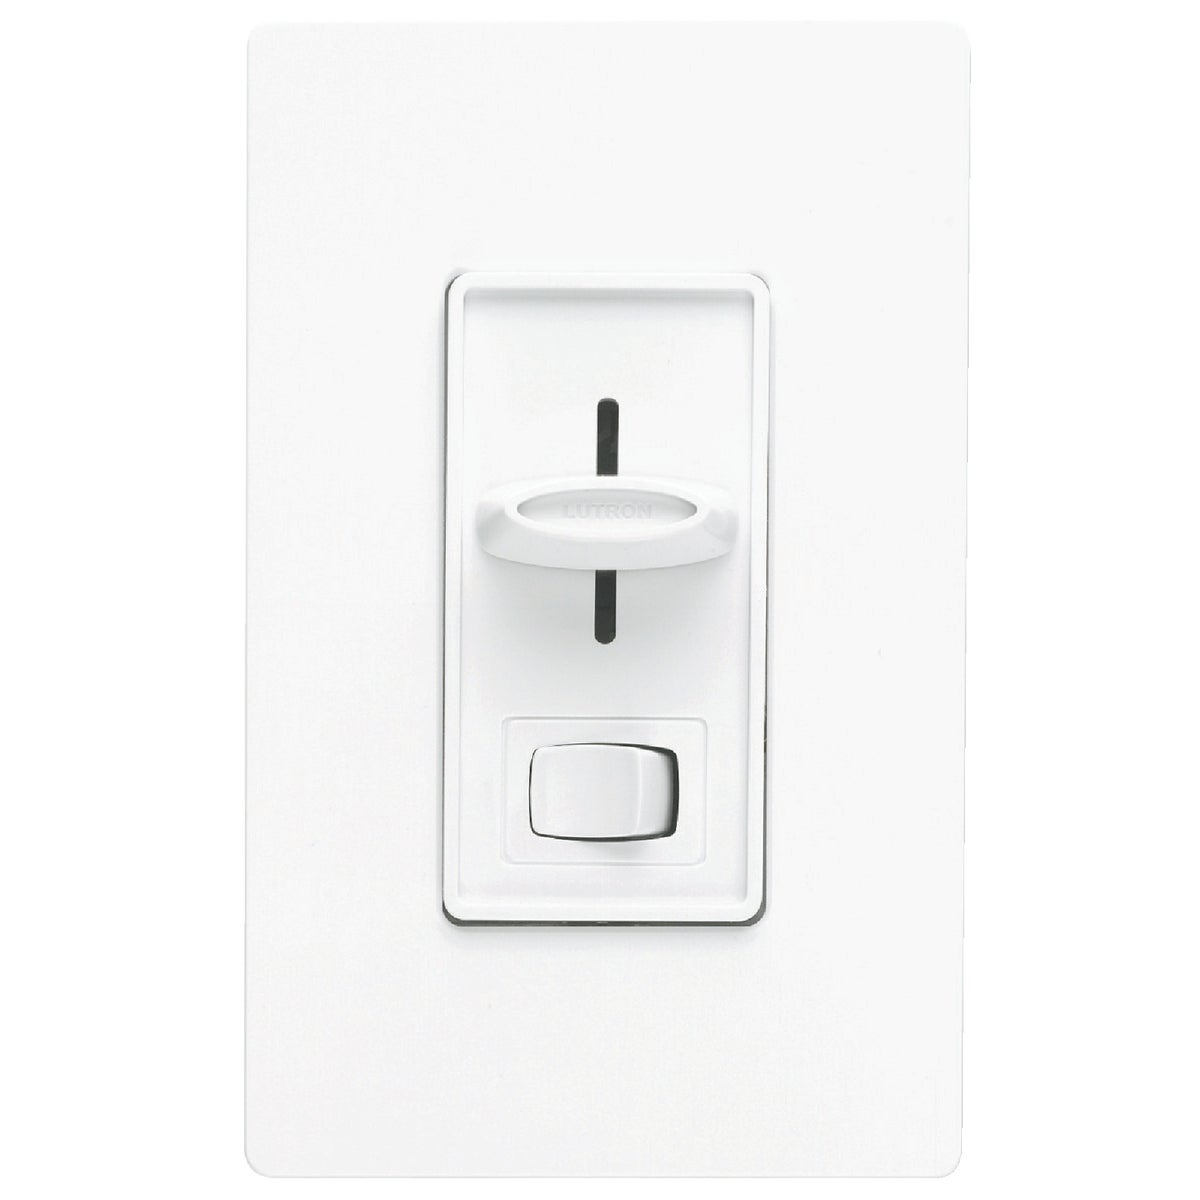 WHT 3-WAY SLIDE DIMMER